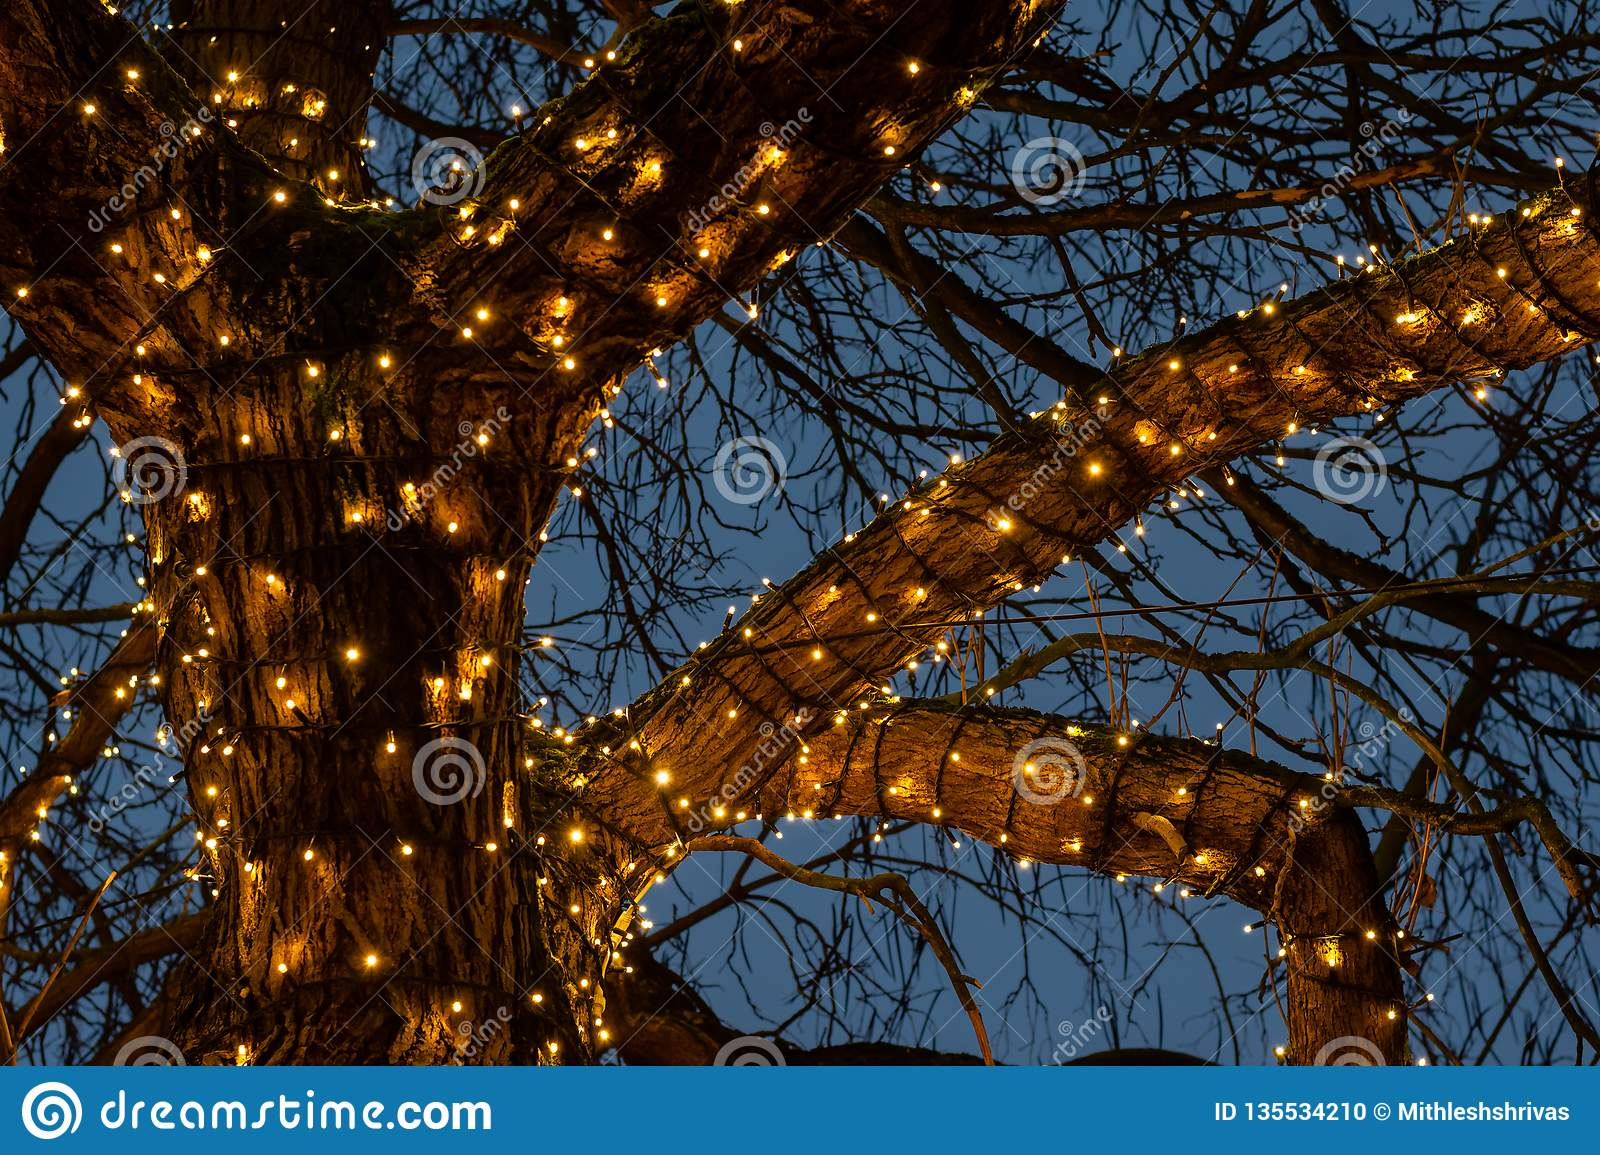 Beautiful Christmas lights around a tree branches against the light blue sky background in night